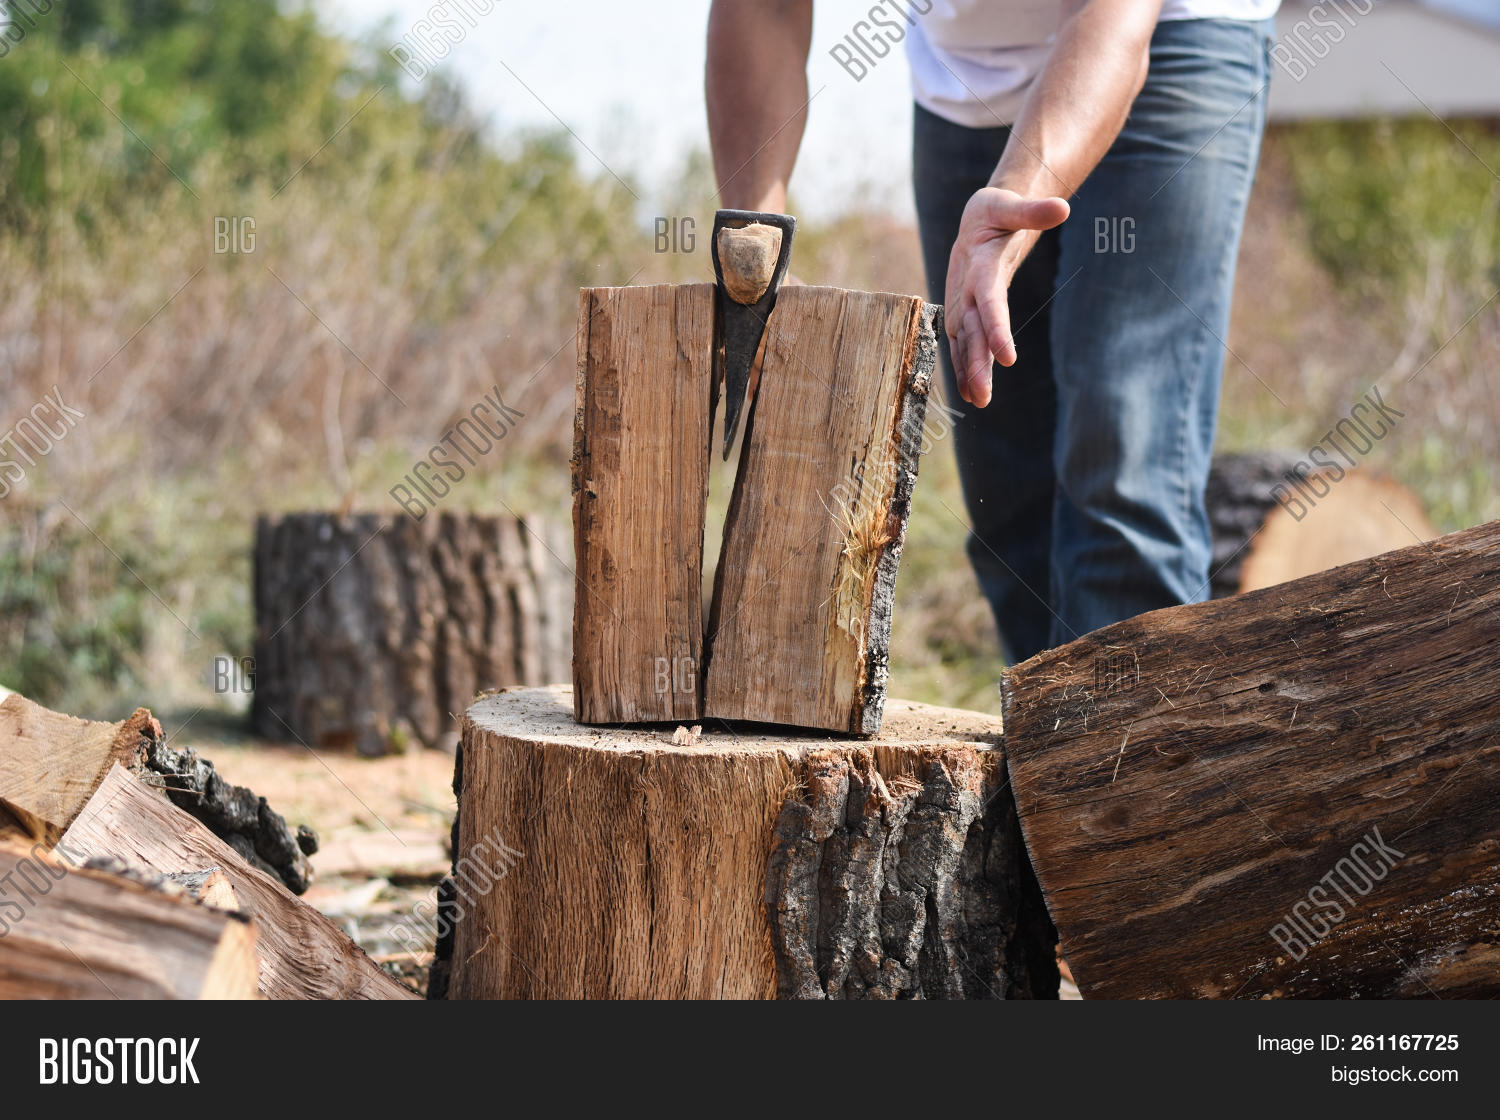 Lumberjack Chopping Image Photo Free Trial Bigstock